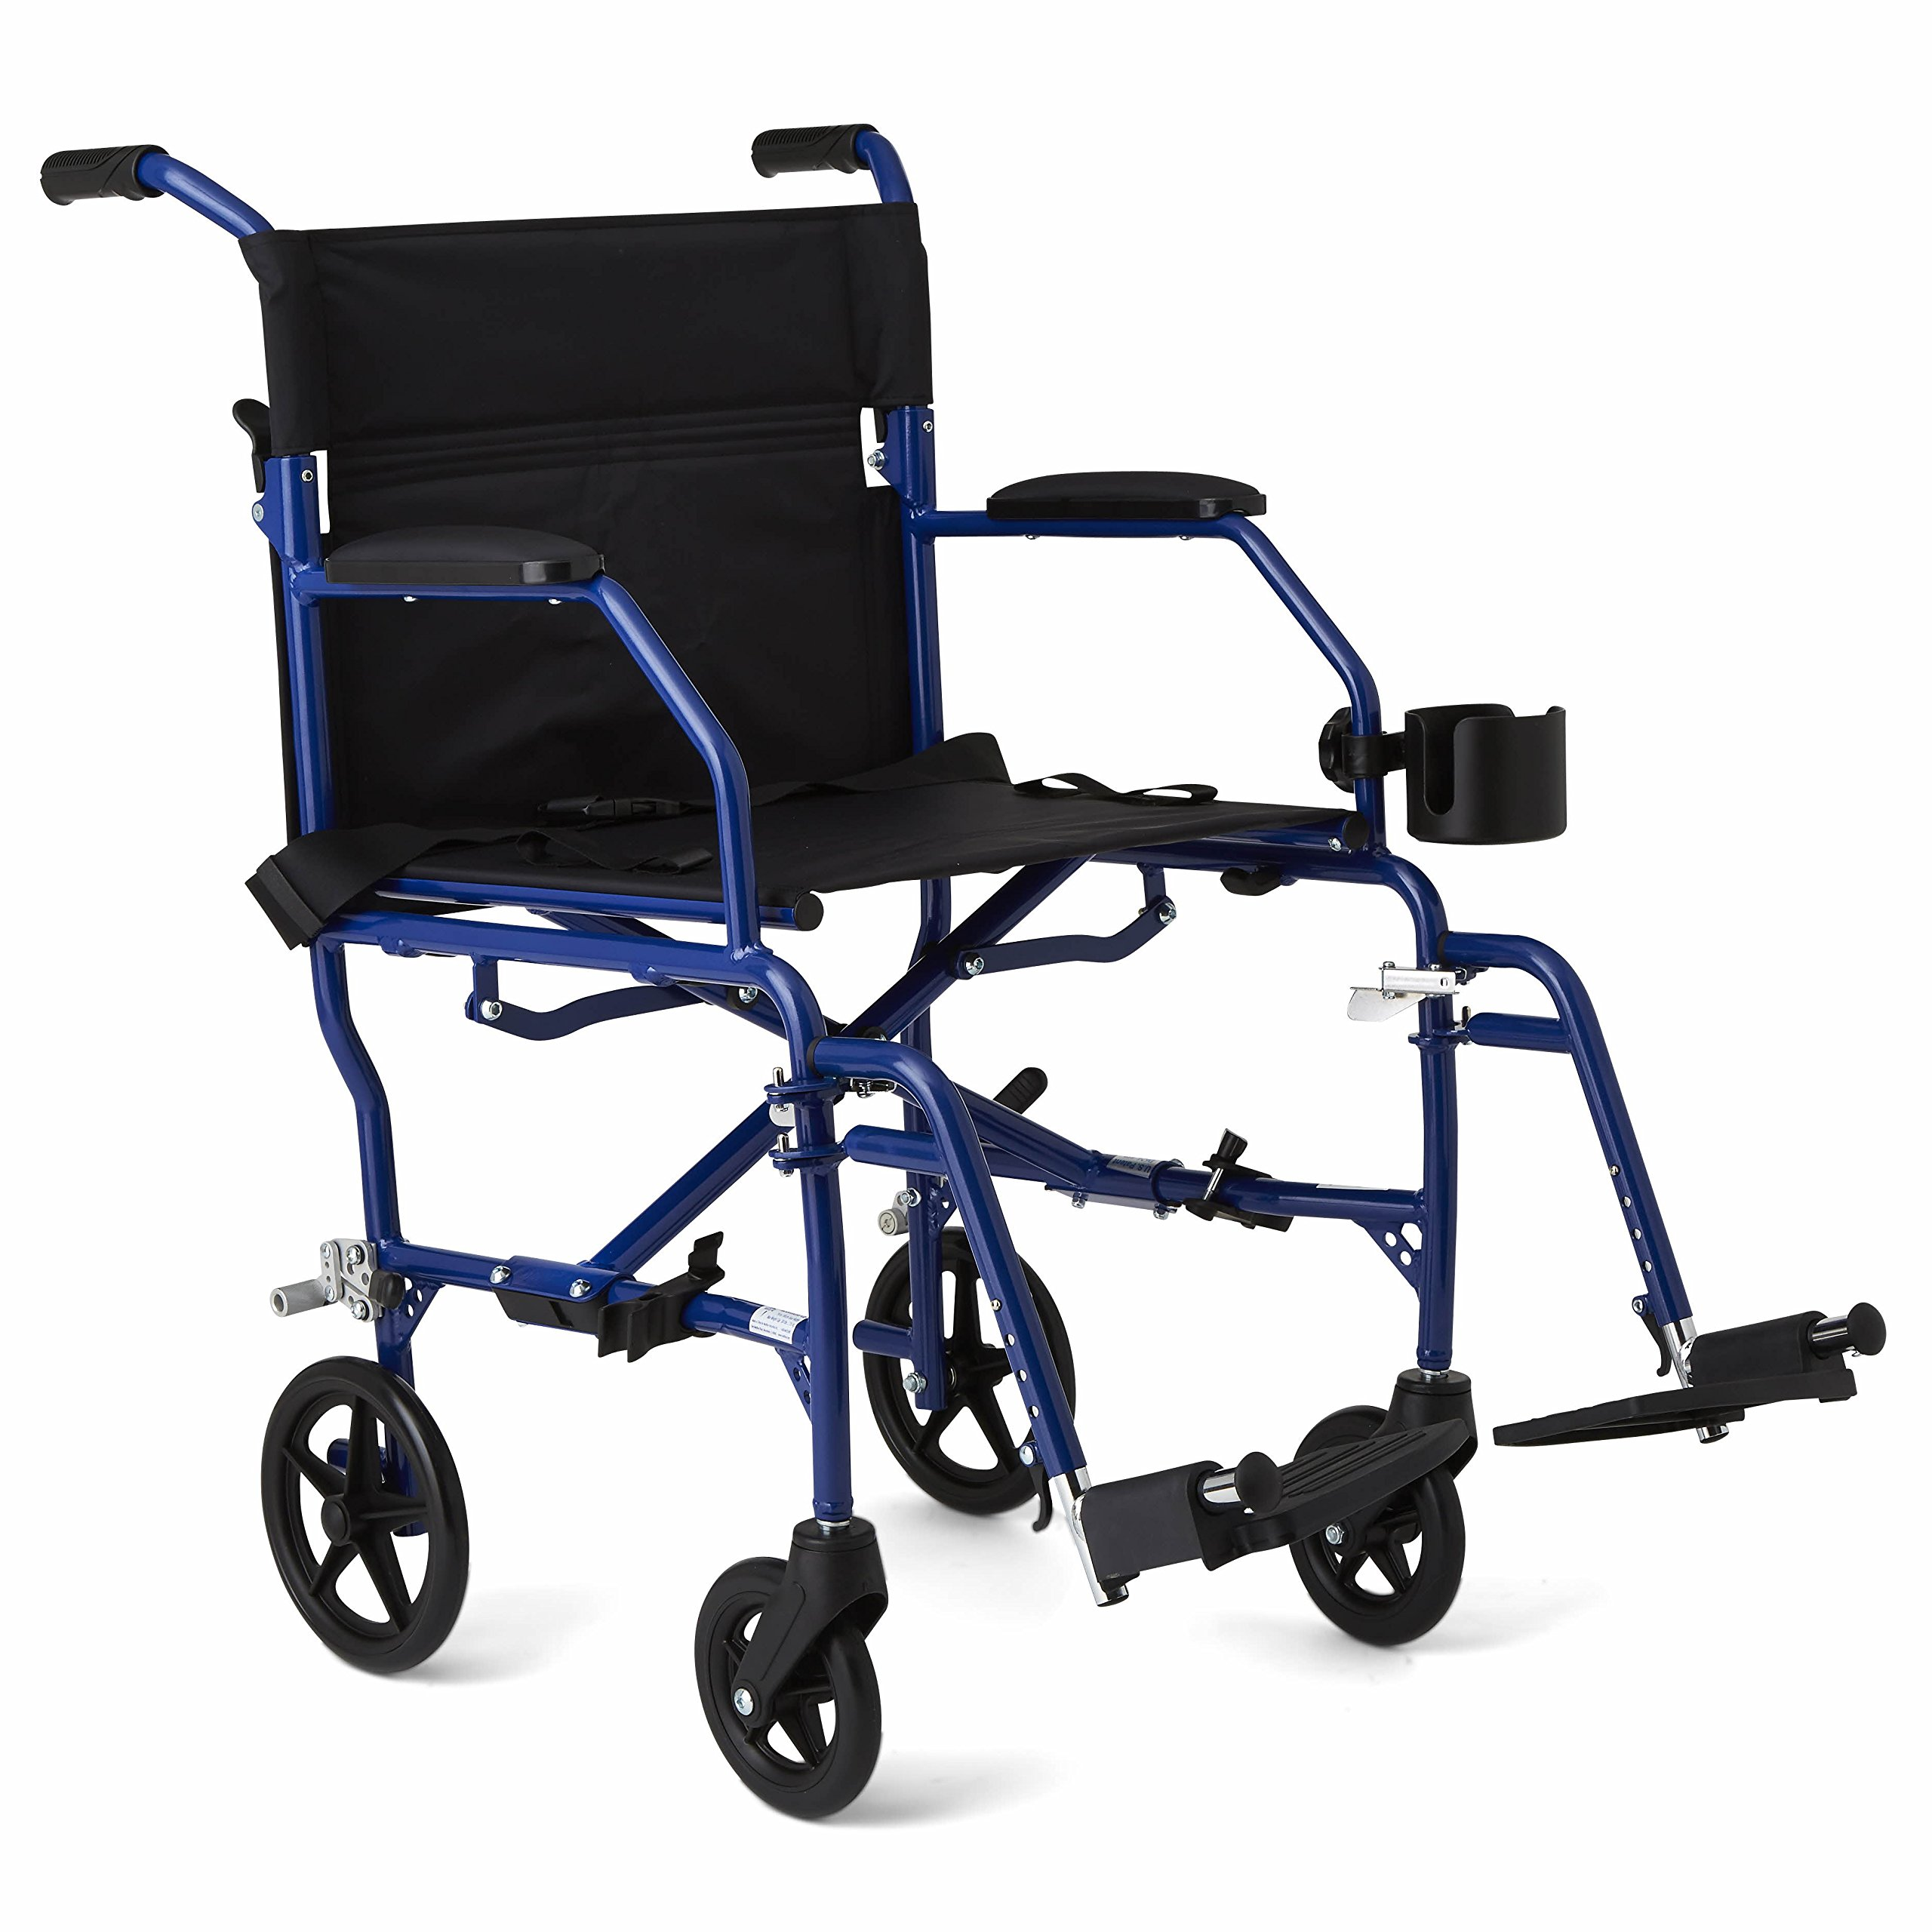 Medline Mobility Ultralight Transport Wheelchair, 19'' Wide Seat, Permanent Desk-Length Arms, Swing Away Footrests, Blue Frame